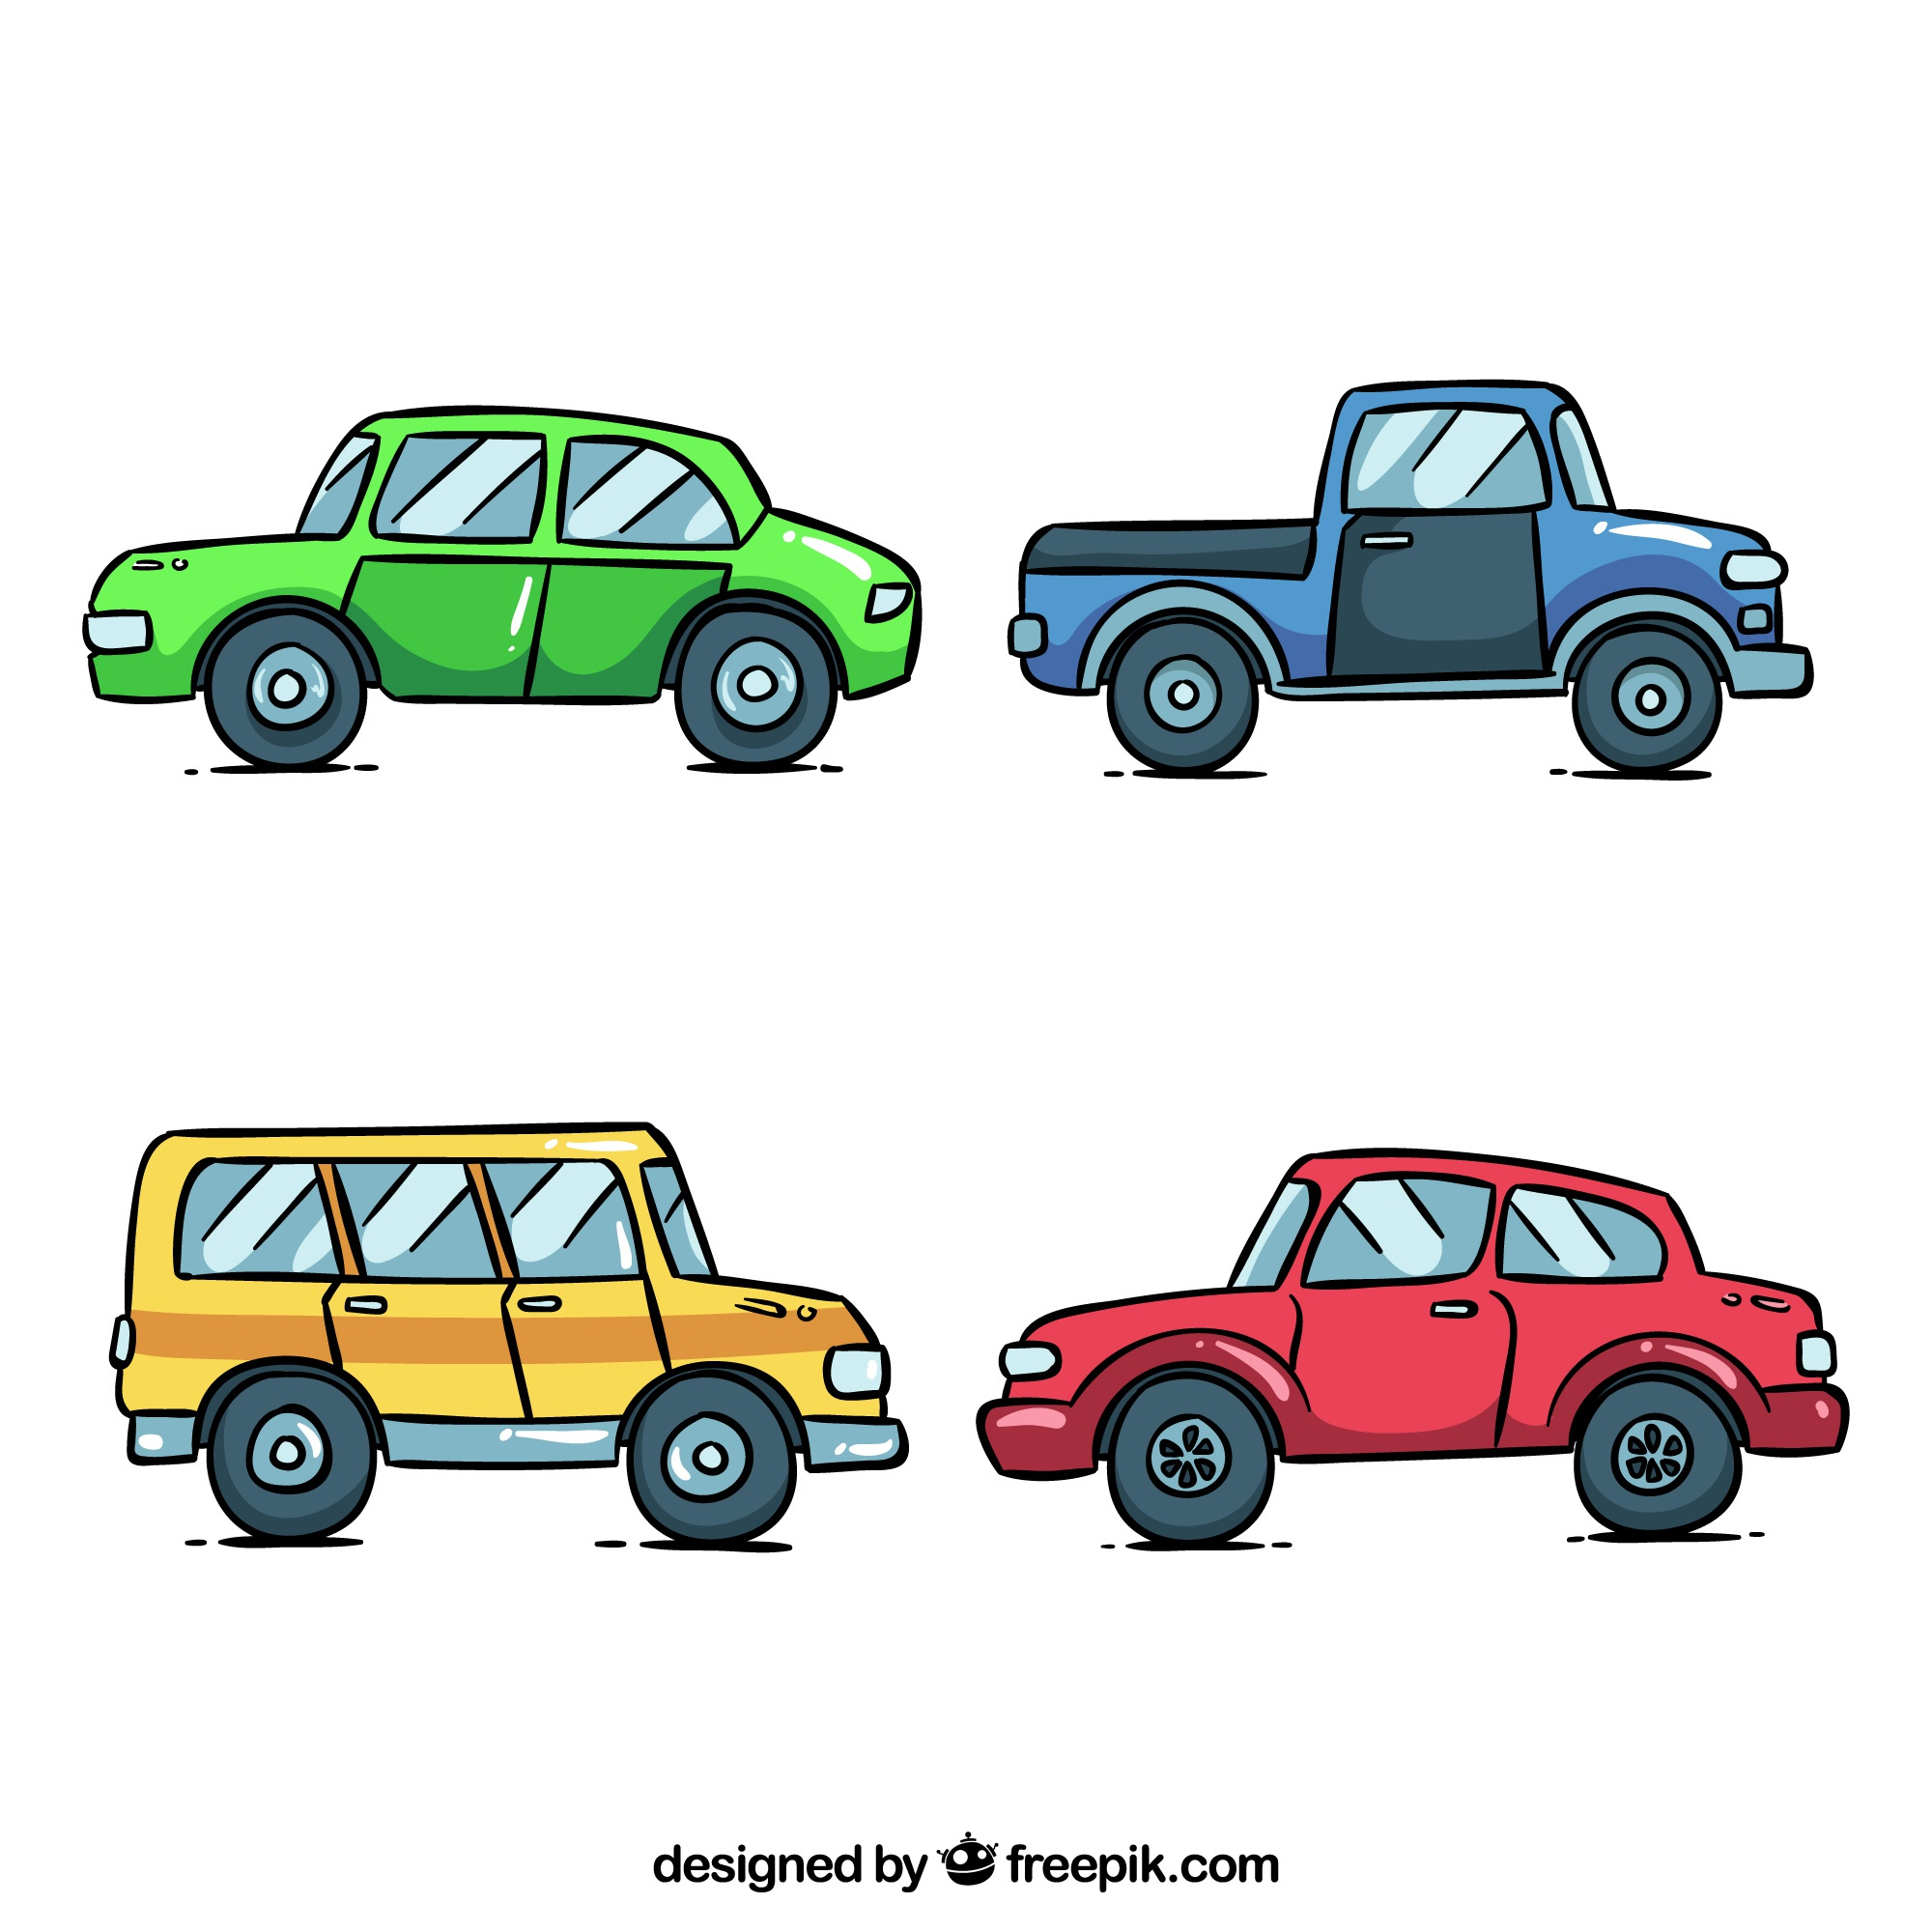 Side view of four cars in different colors